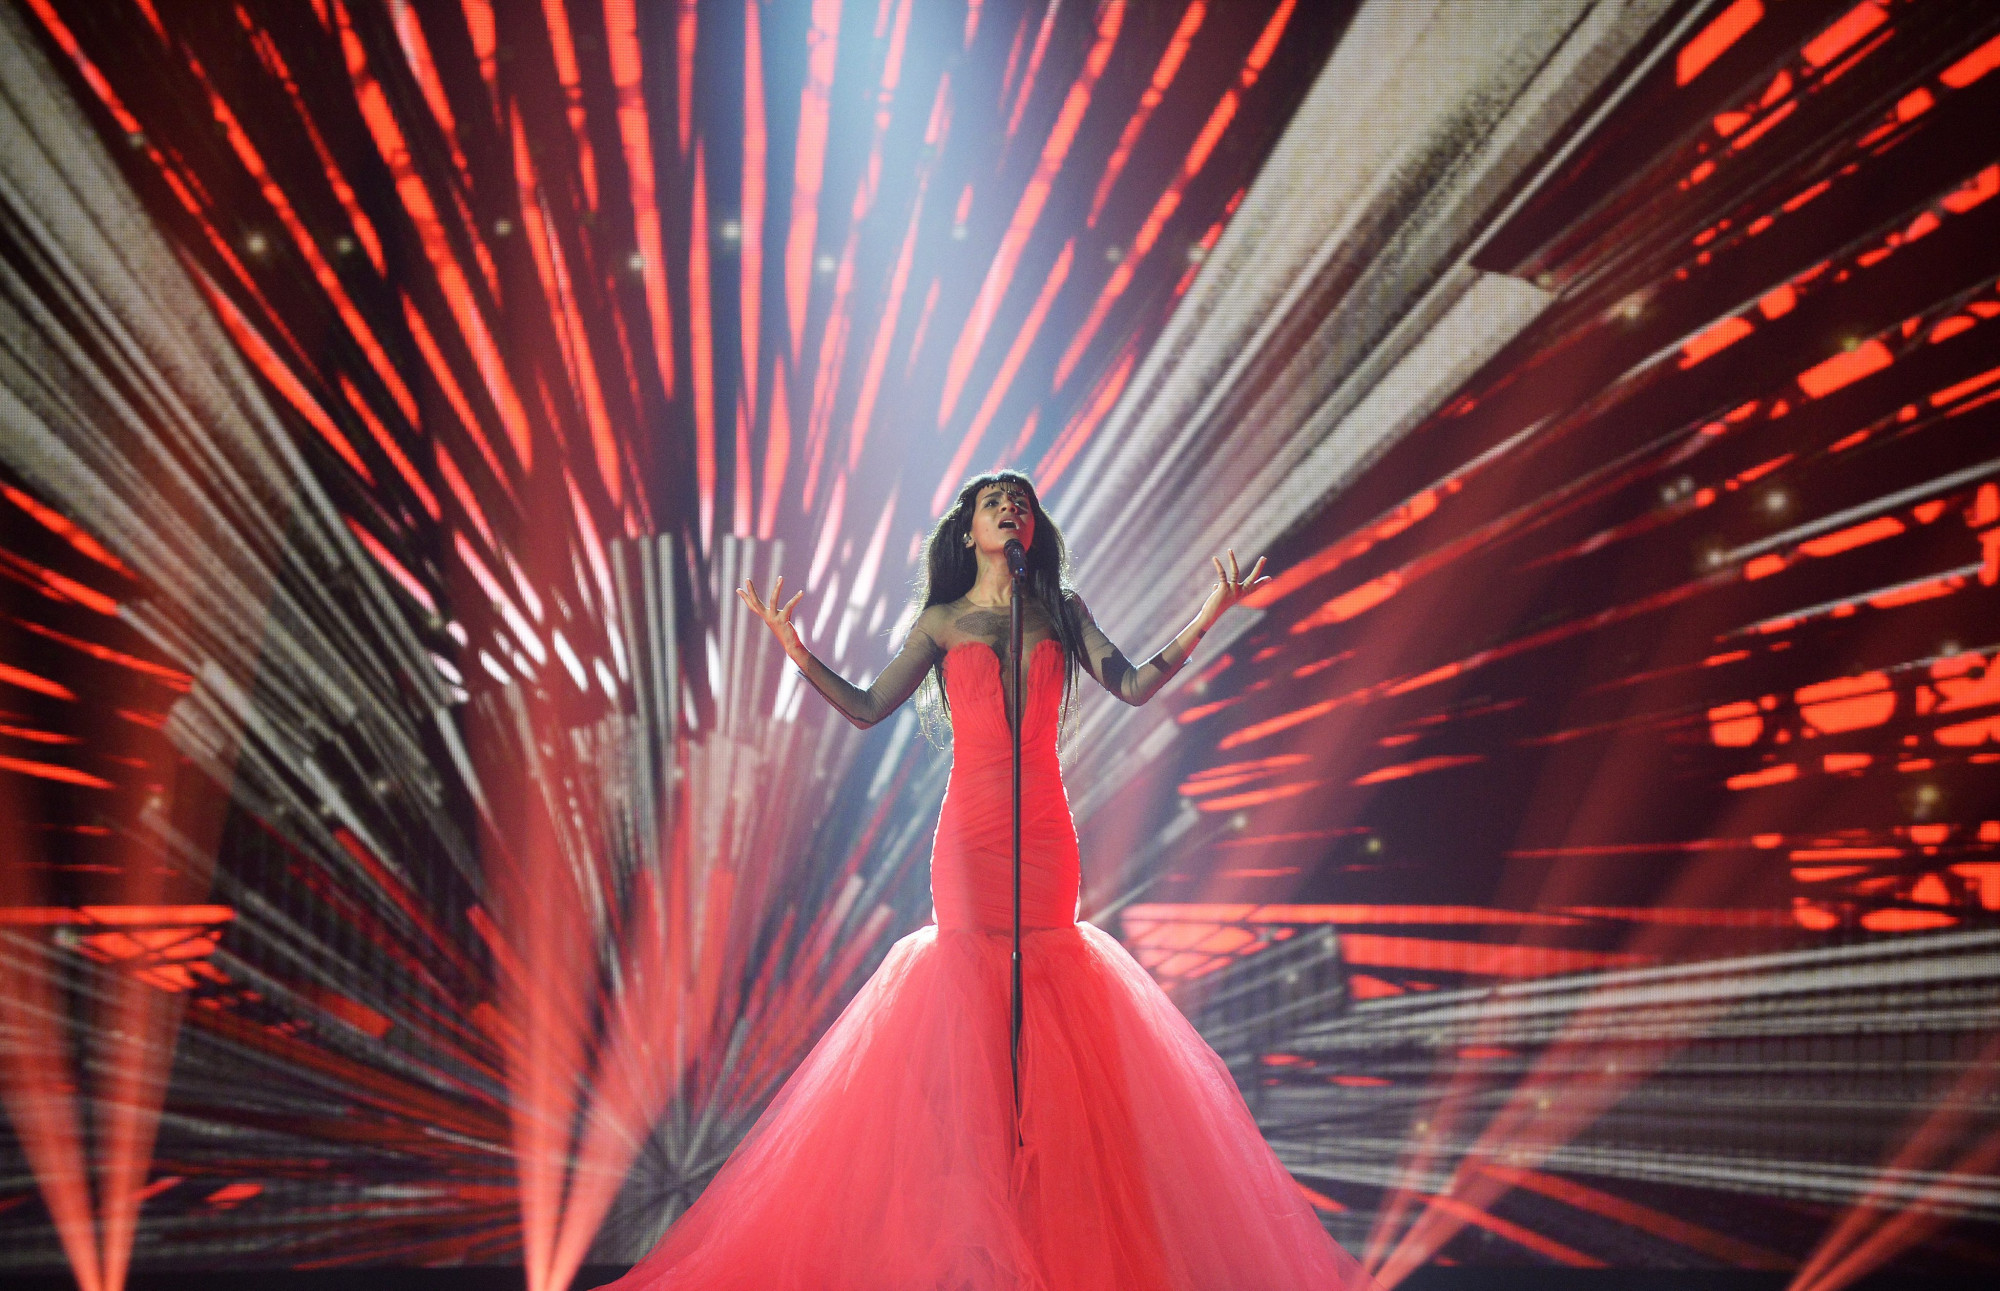 eurovision 2015 semi final 2 review results and analysis. Black Bedroom Furniture Sets. Home Design Ideas